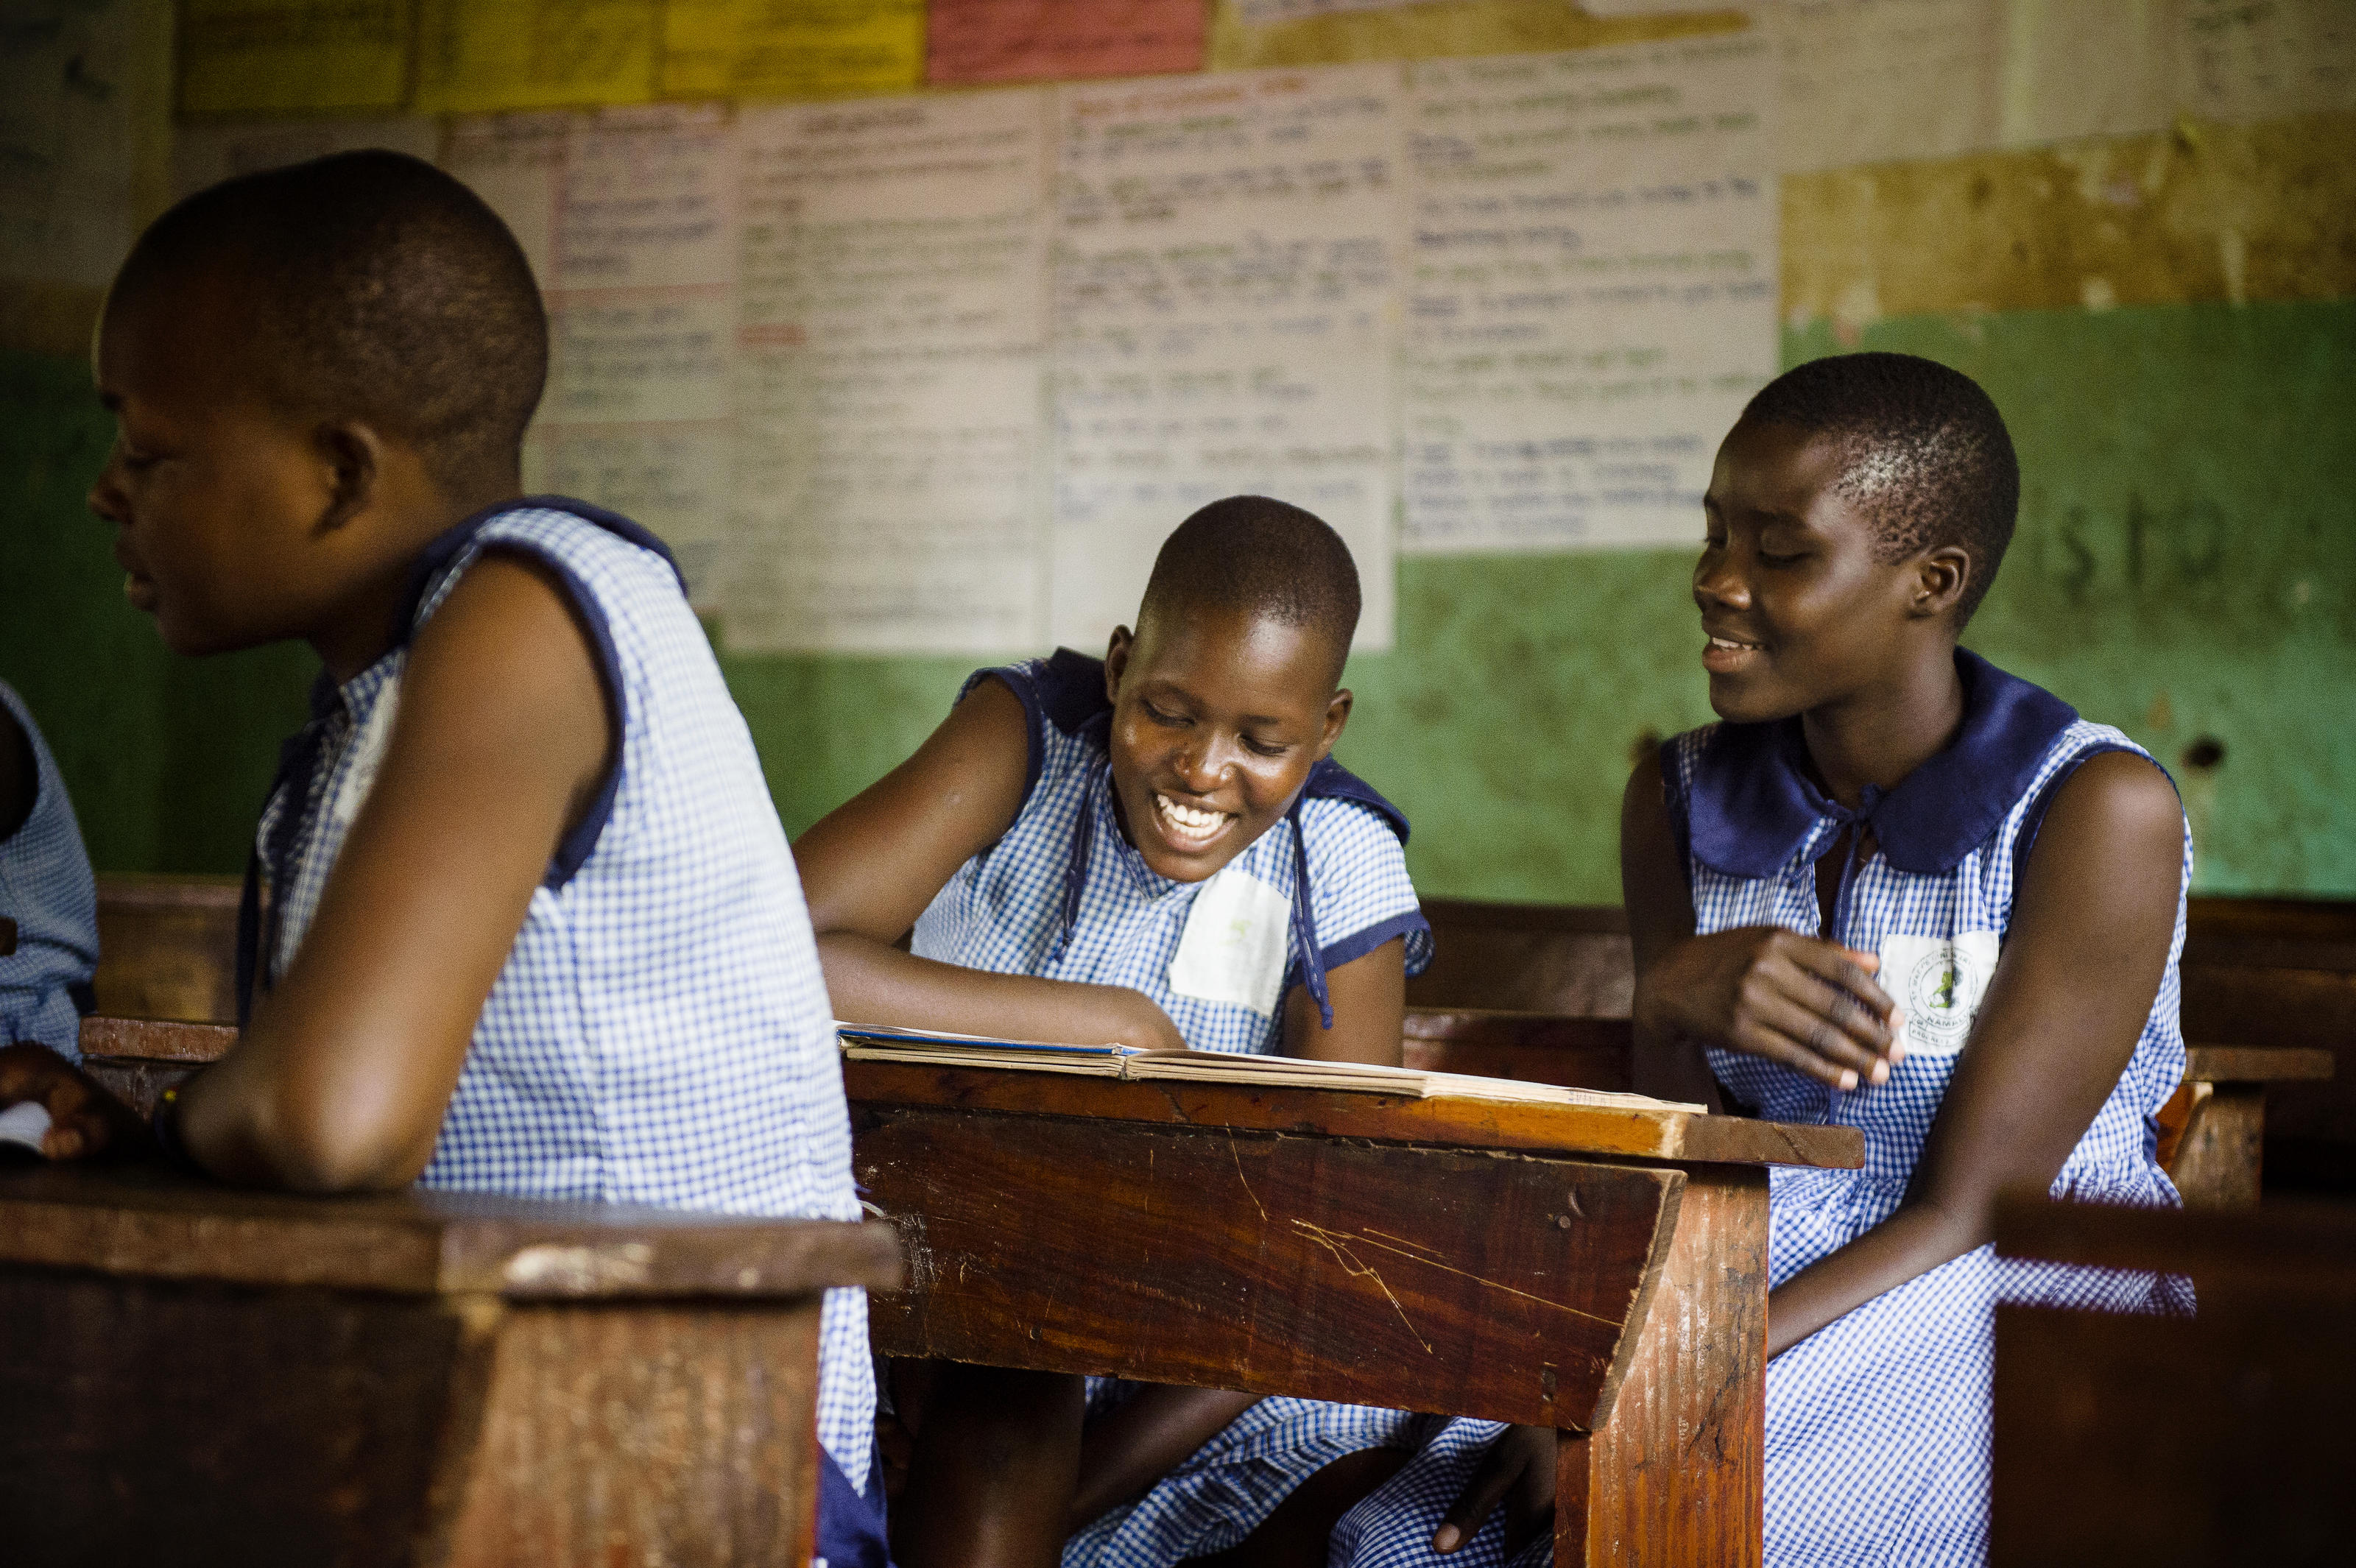 Fiona and Beatrice during lessons at St Mary's School, Uganda.